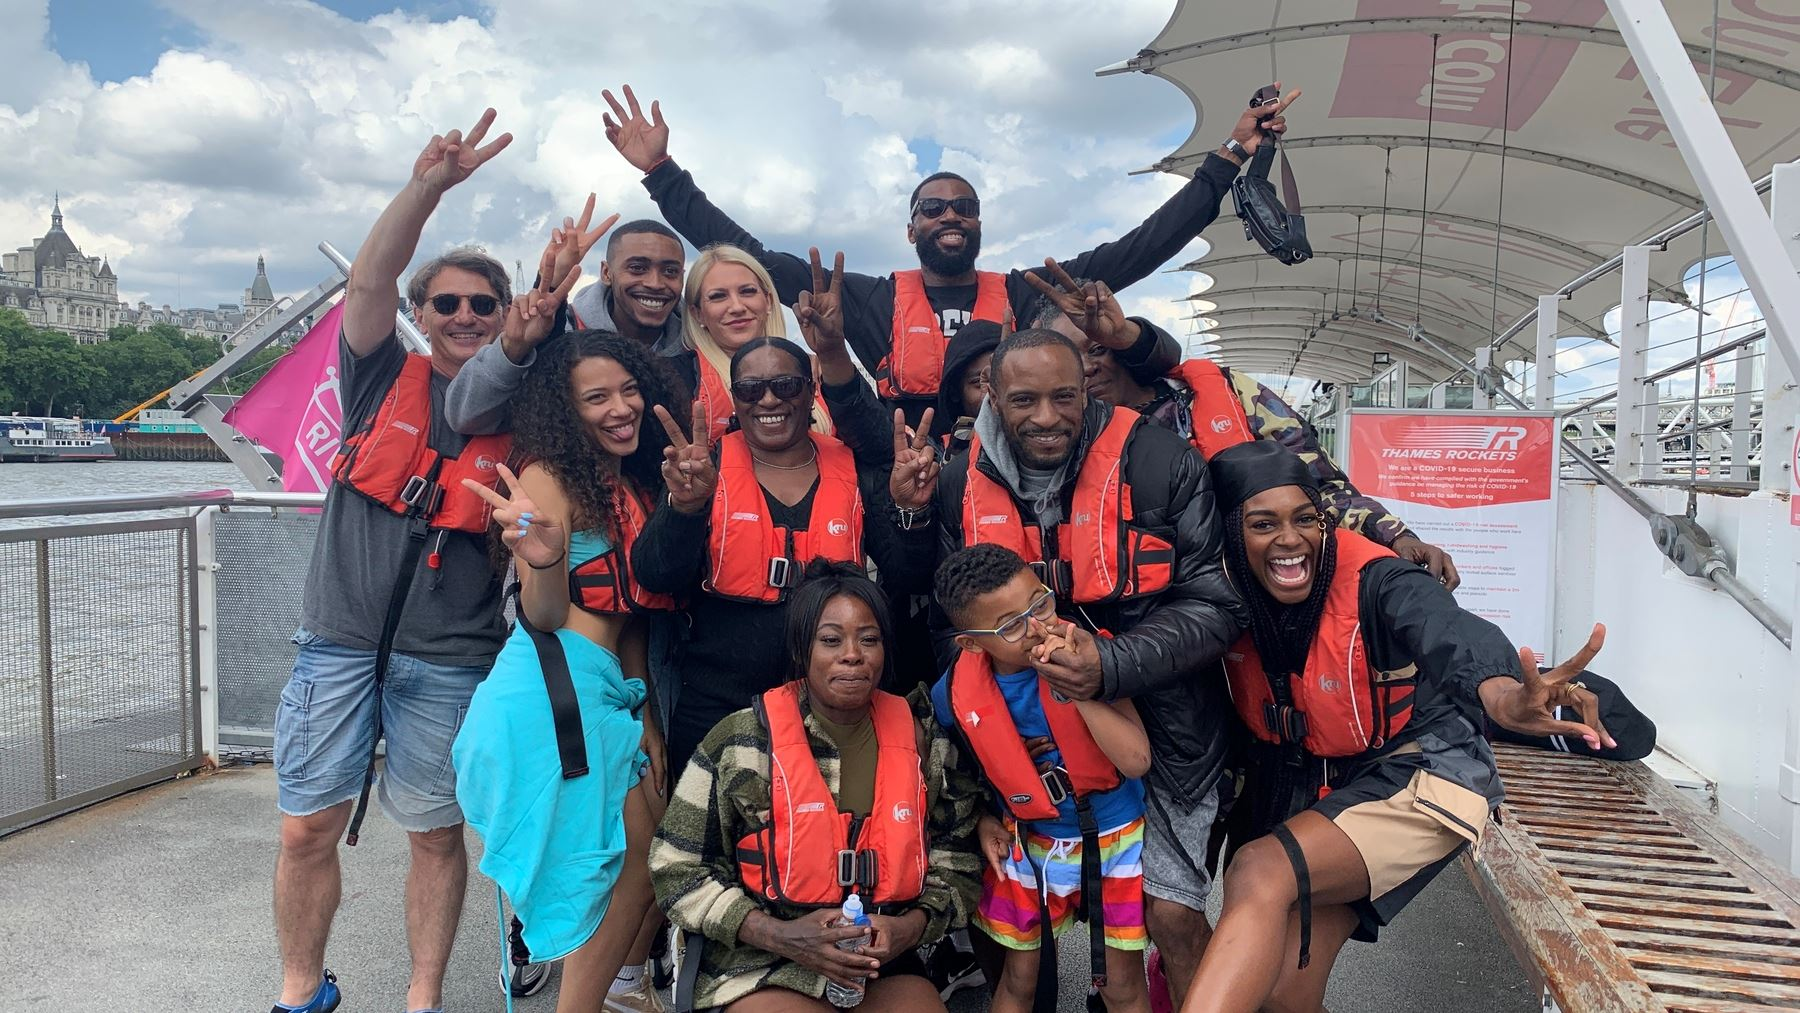 Perri Shakes-Drayton and Mike Edwards have a blast on our red rocket Thames speedboats